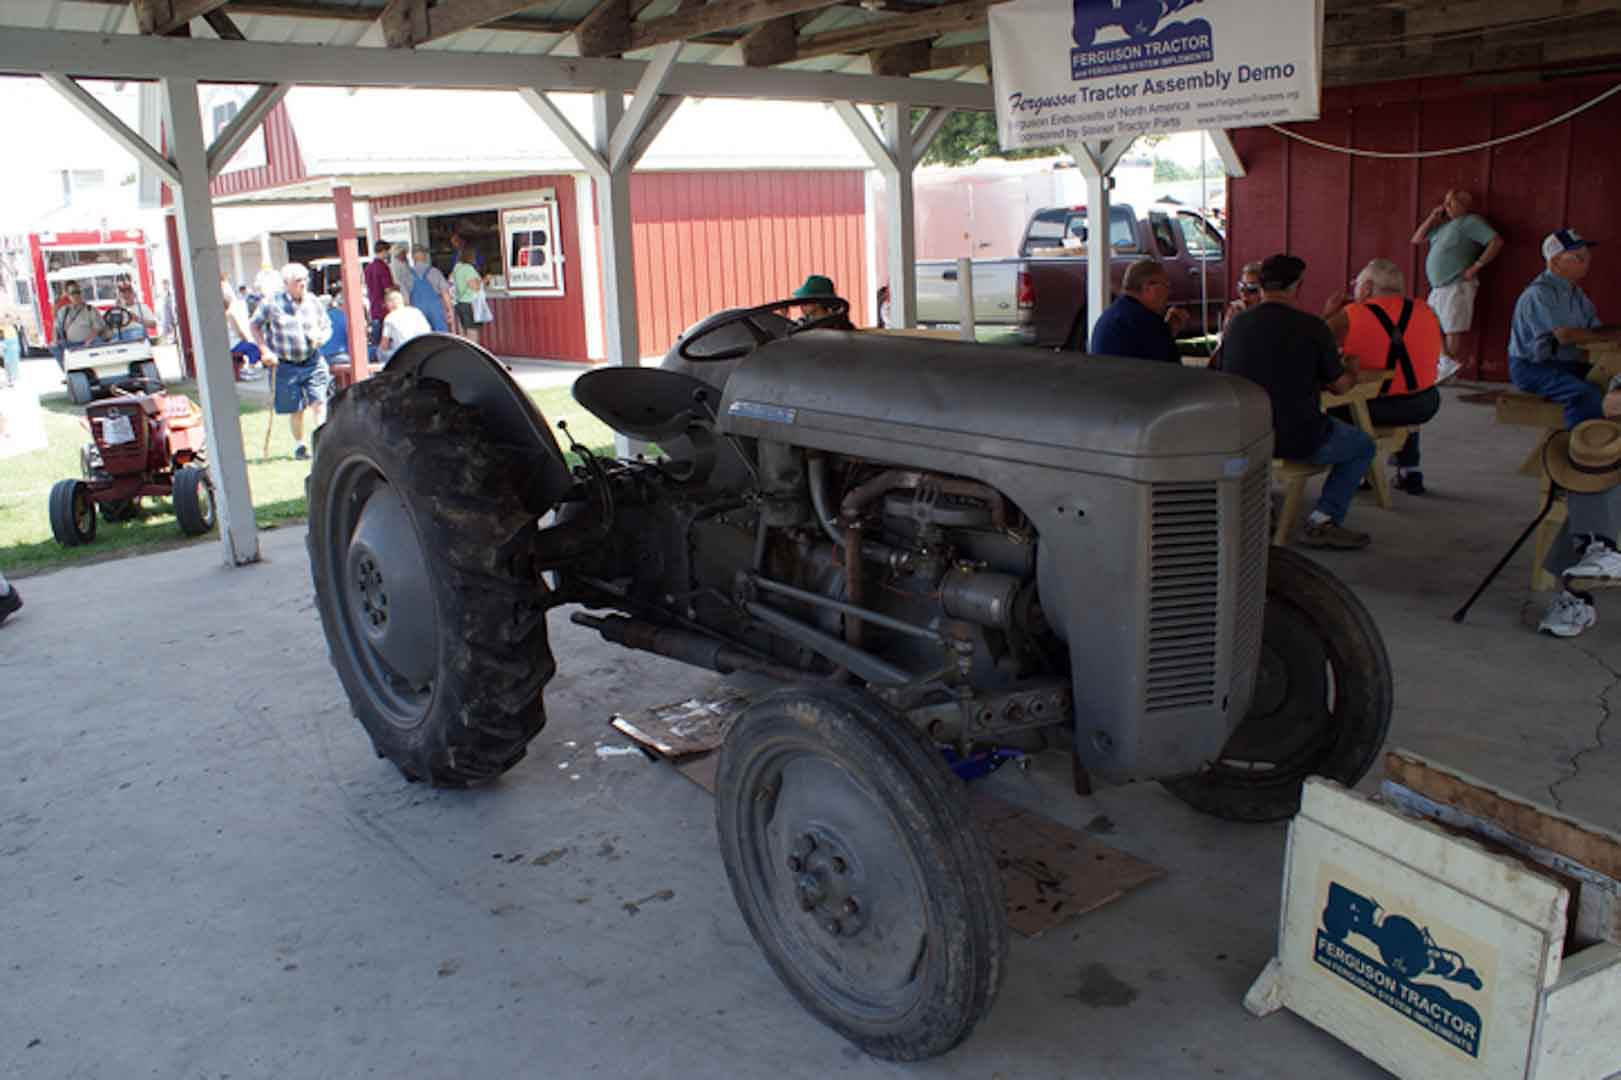 Jeff Miller's TO 20 assembly tractor